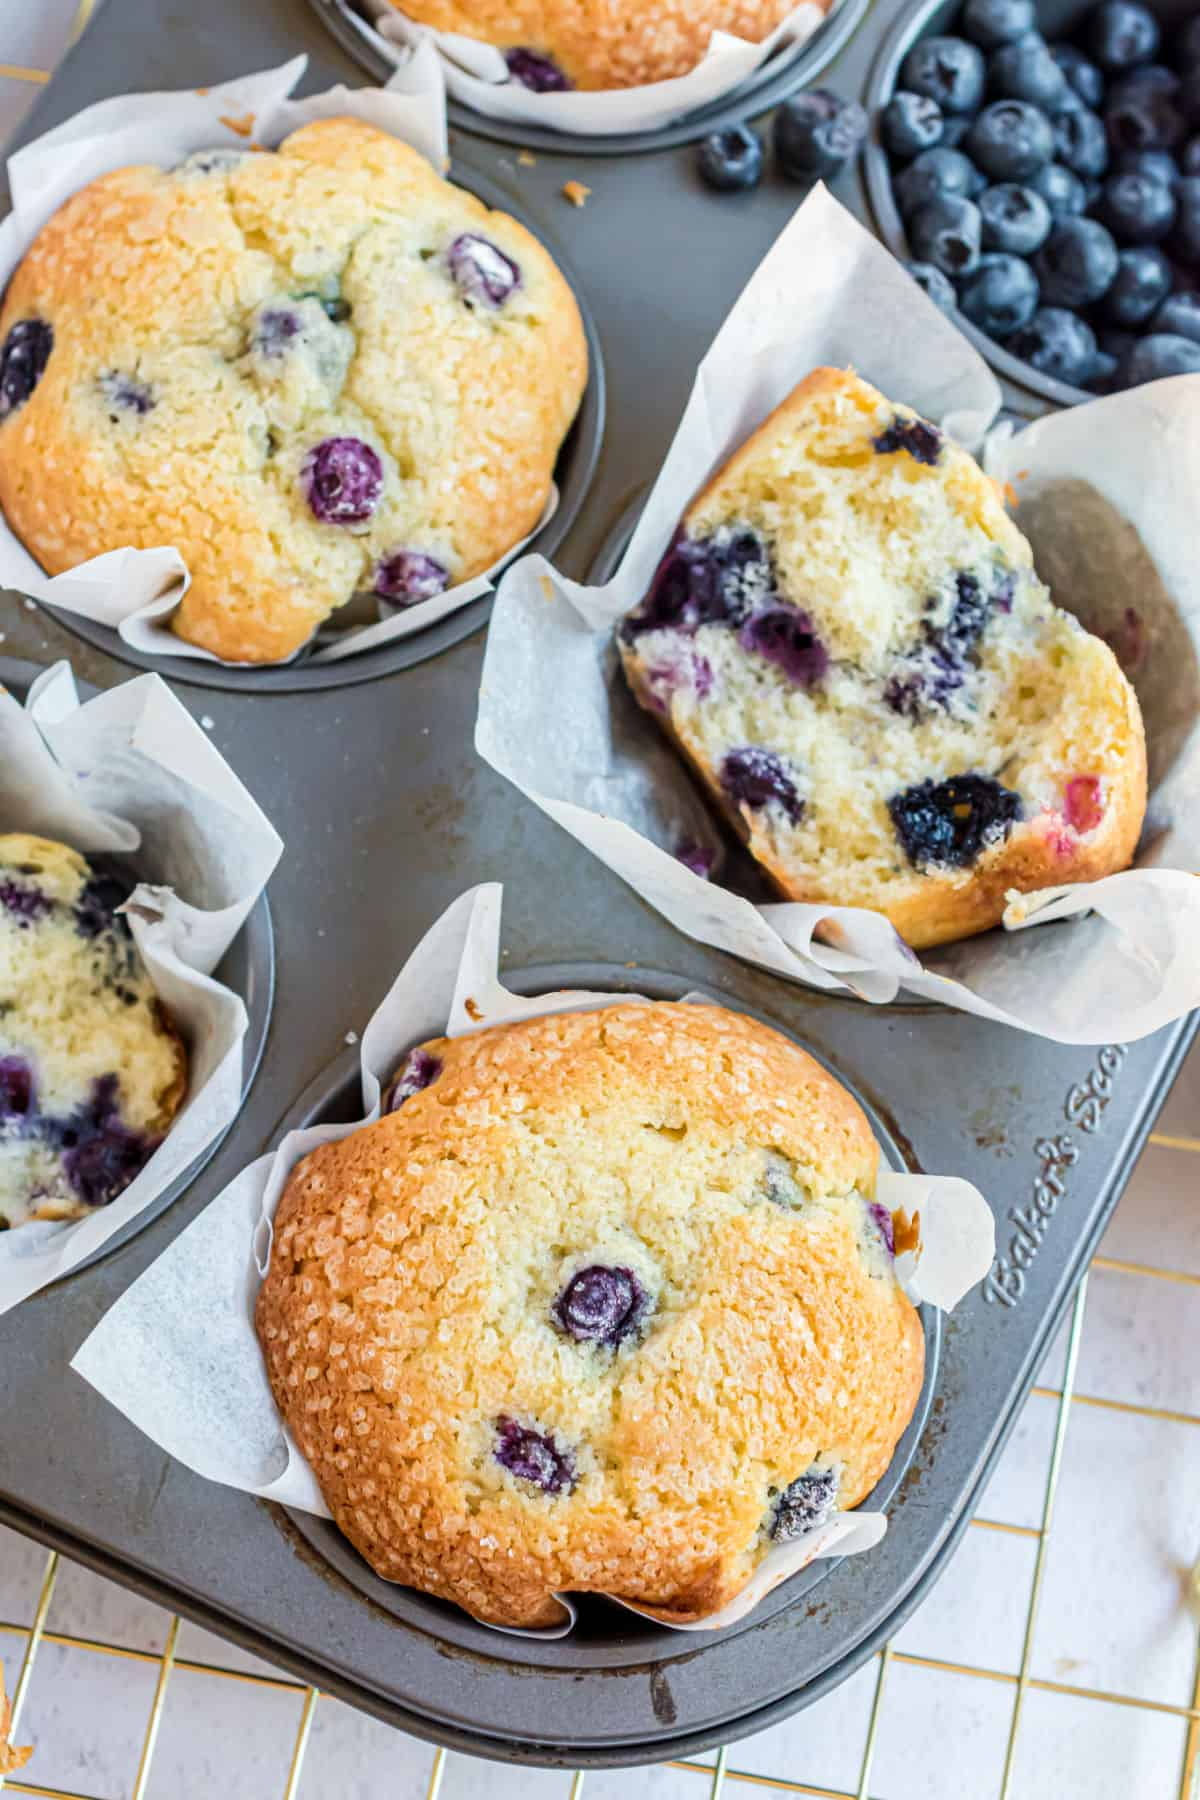 Blueberry muffins in muffin tin, some cut in half.